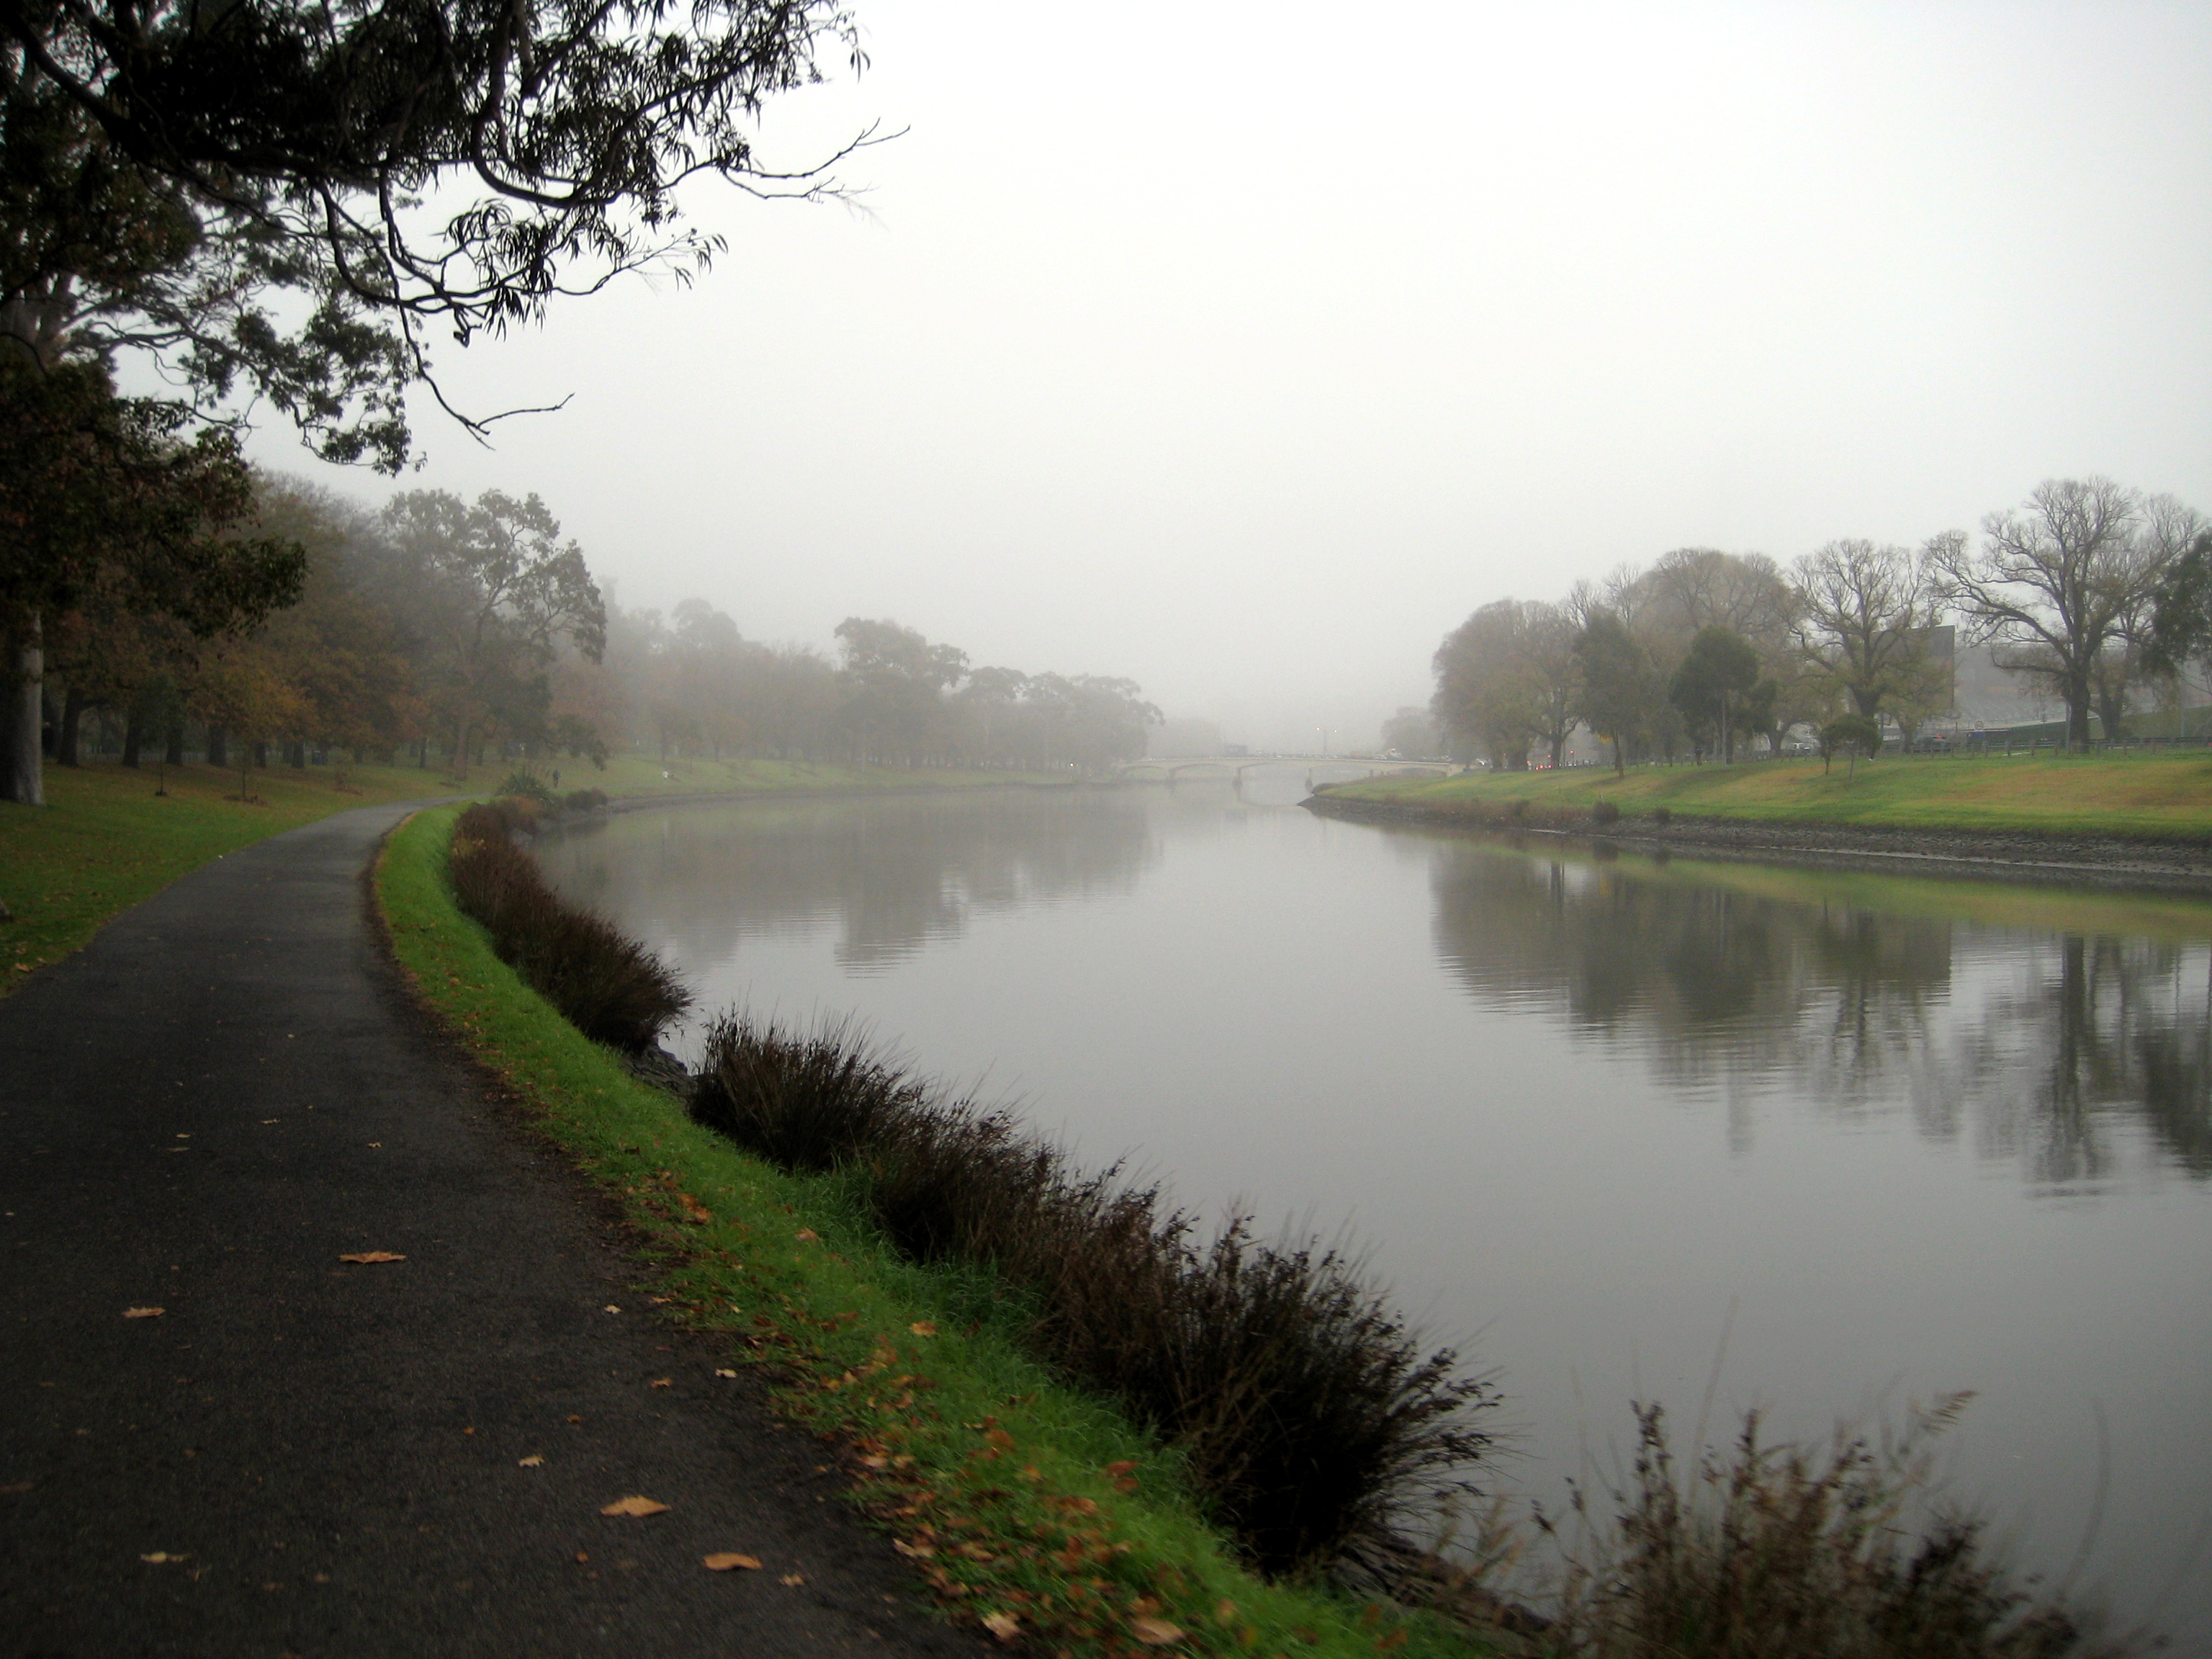 The Yarra River in fog